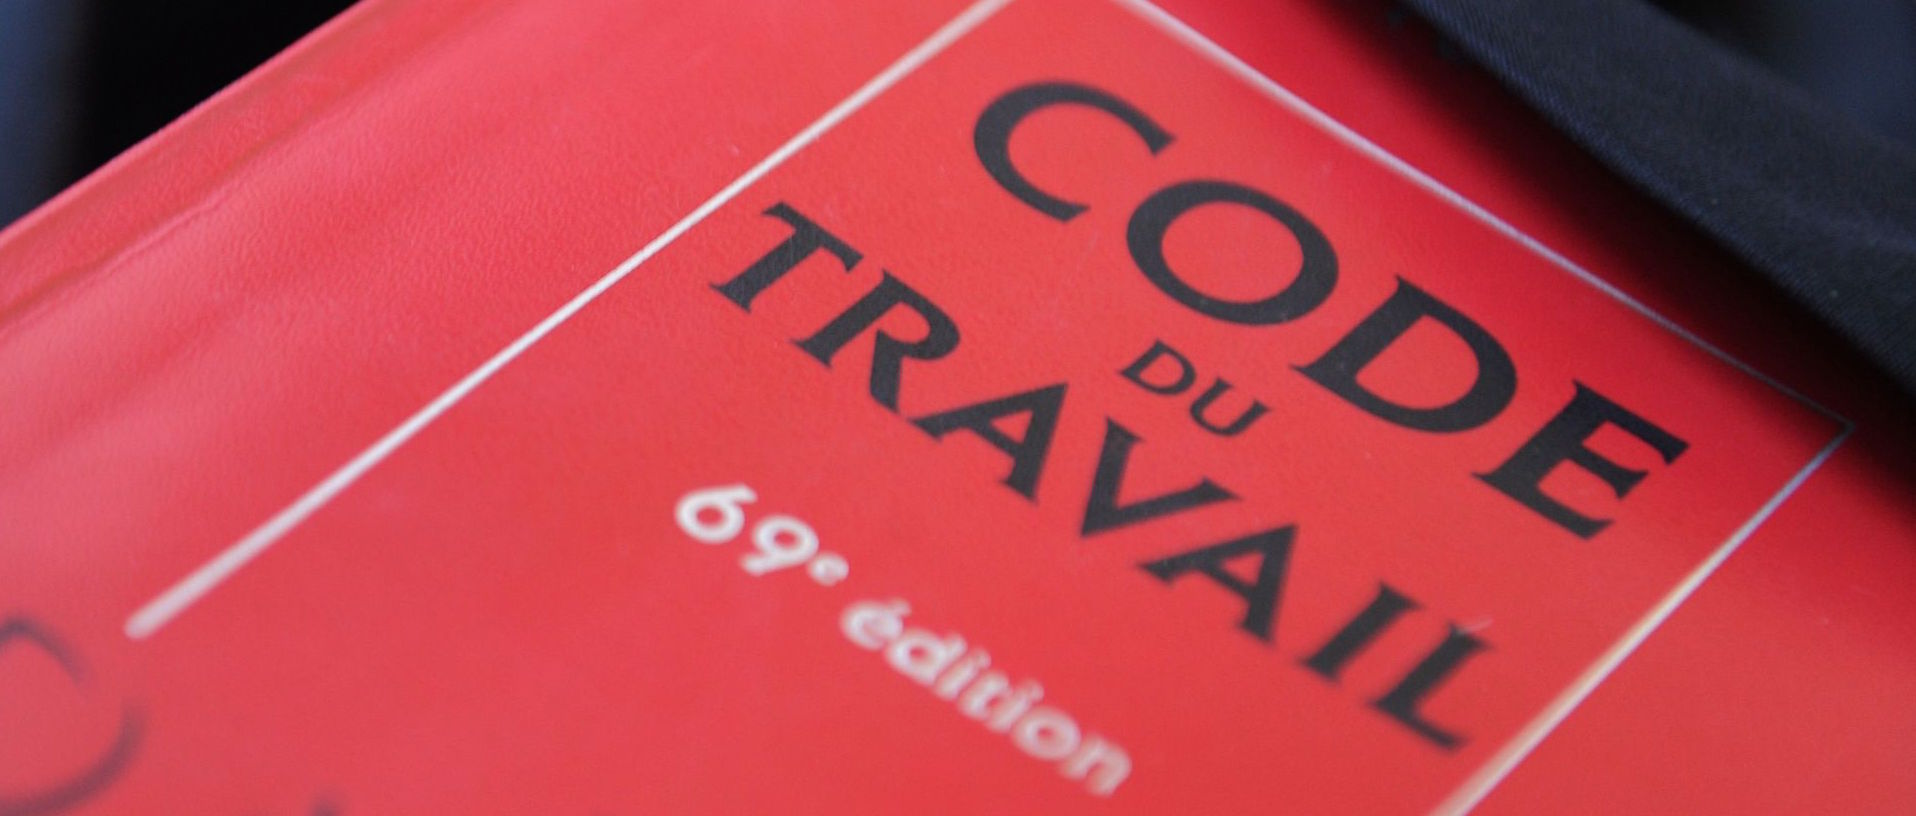 "A picture taken on May 24, 2012 shows a copy of the French labour code (""code du travail"" in French), in Quimper, western France."